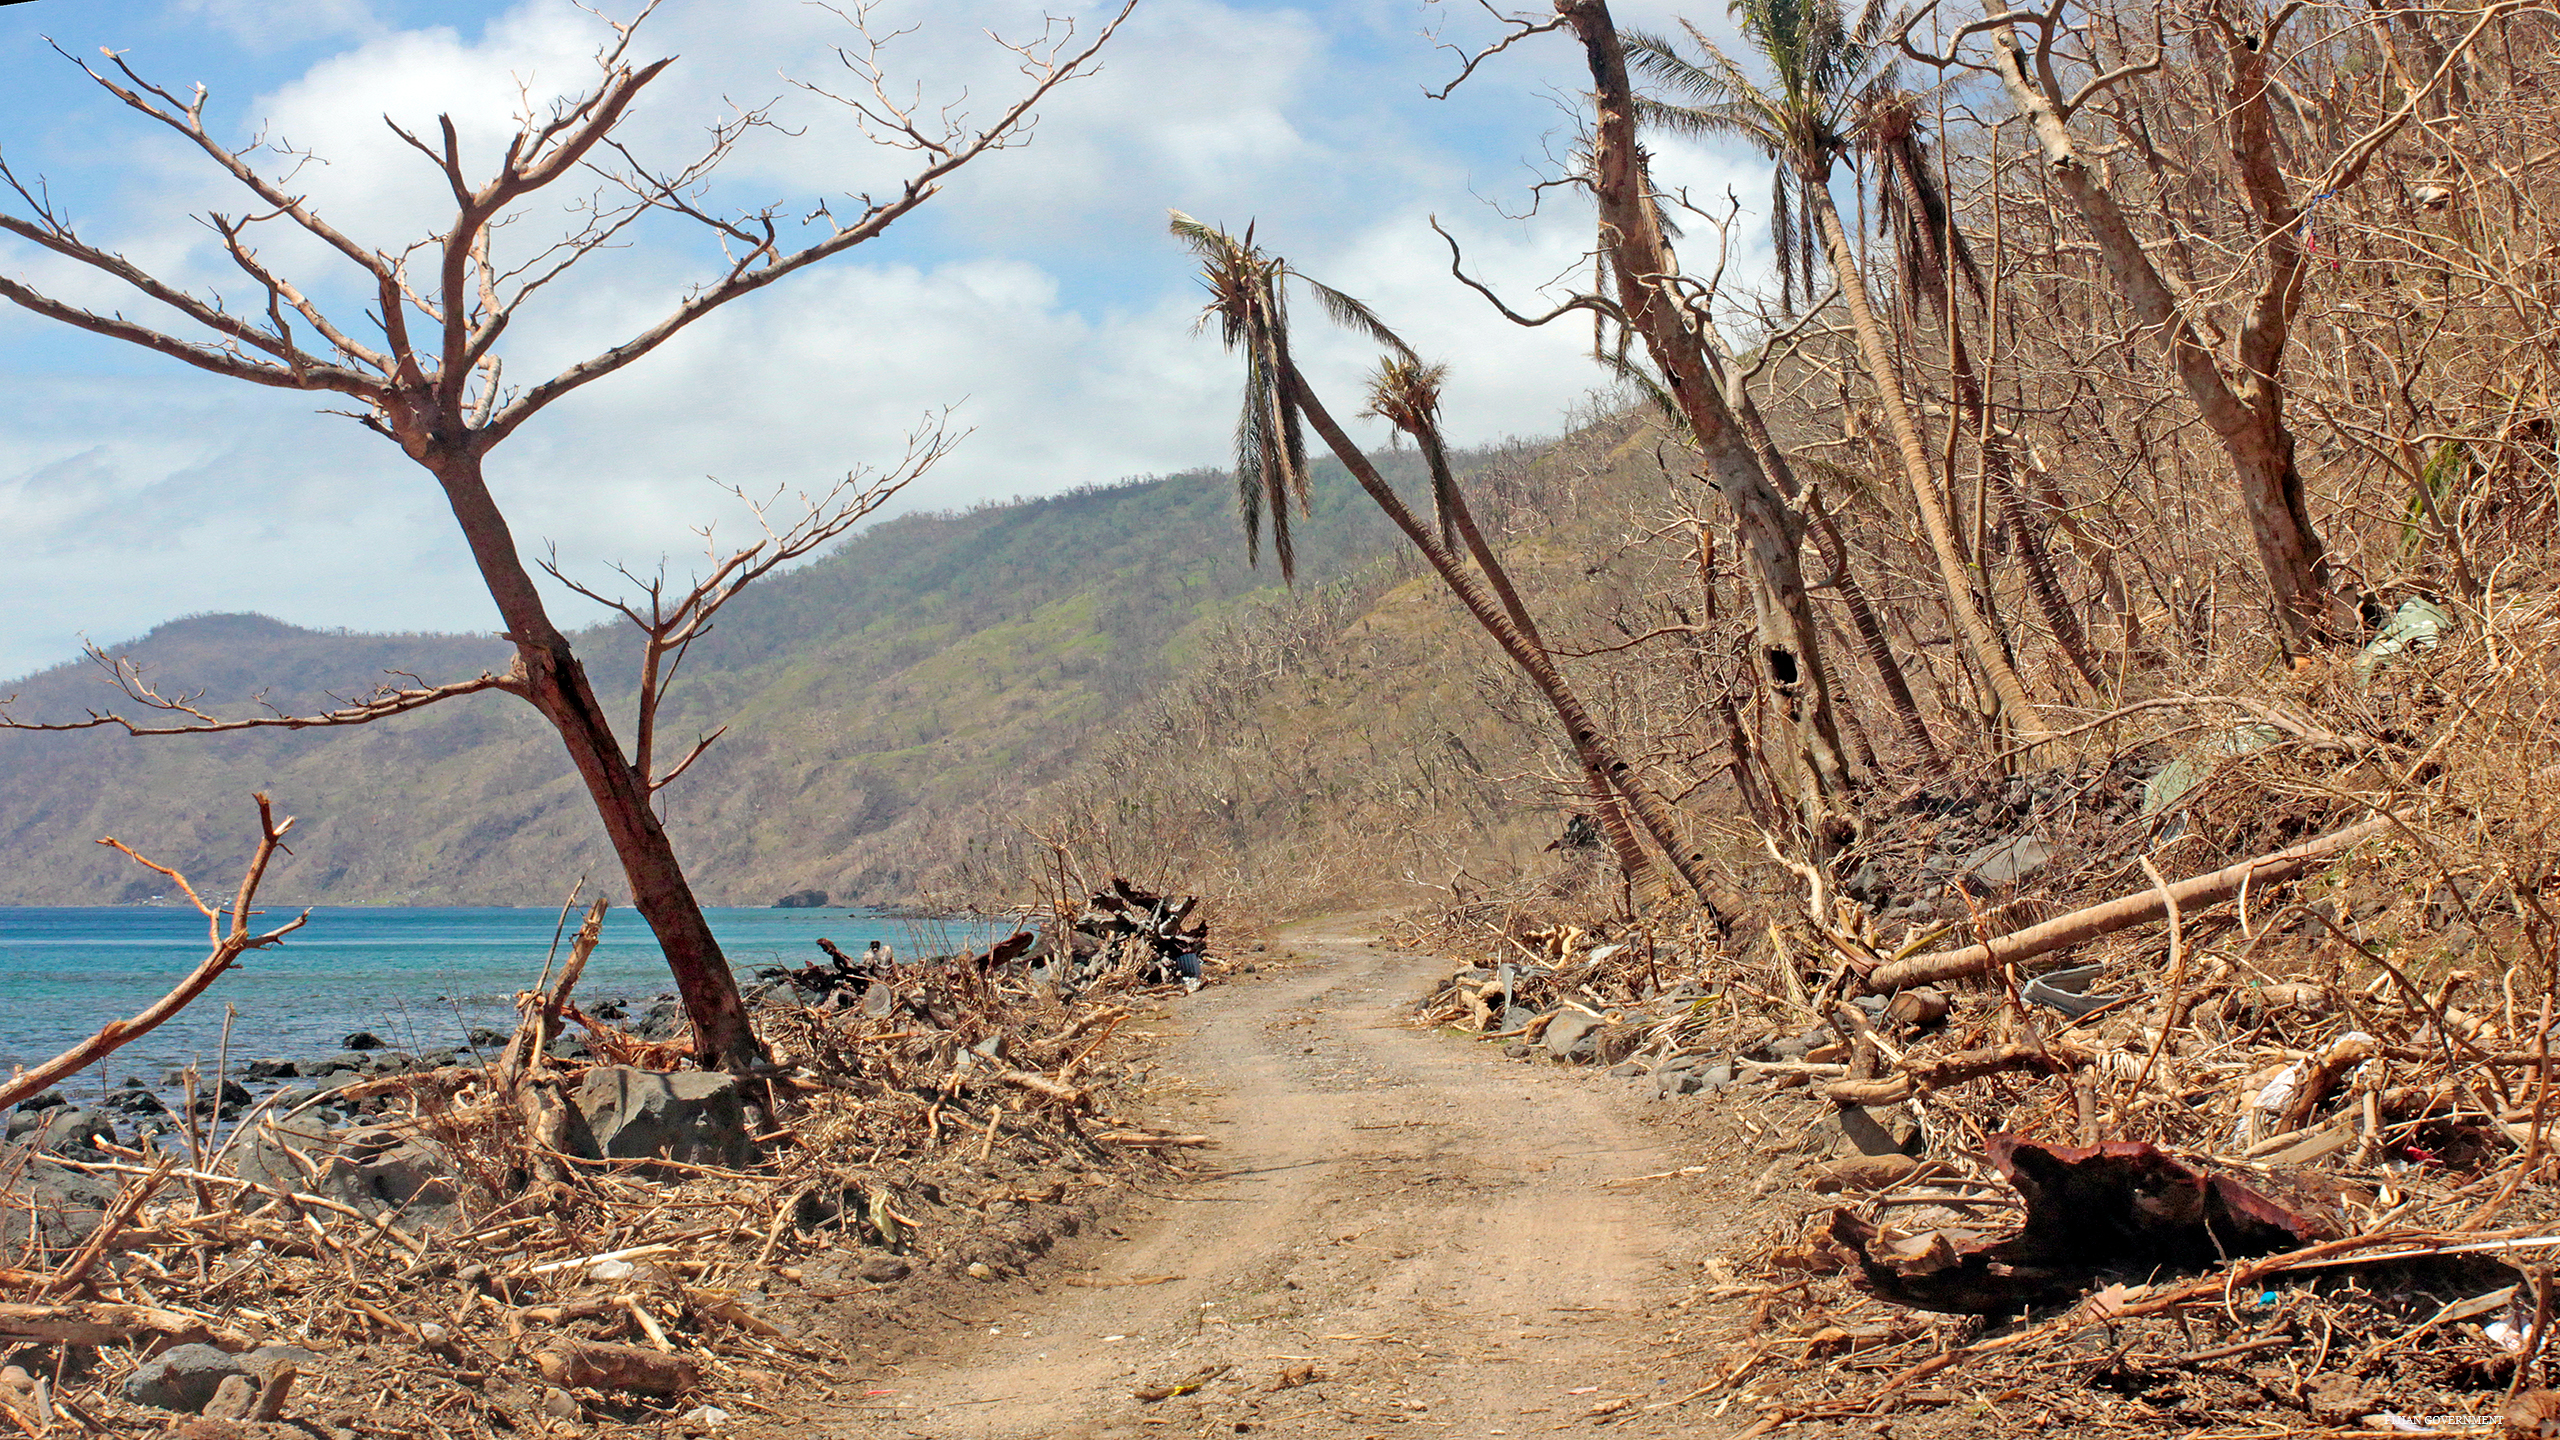 Transformative action to avoid extreme effects of climate change.